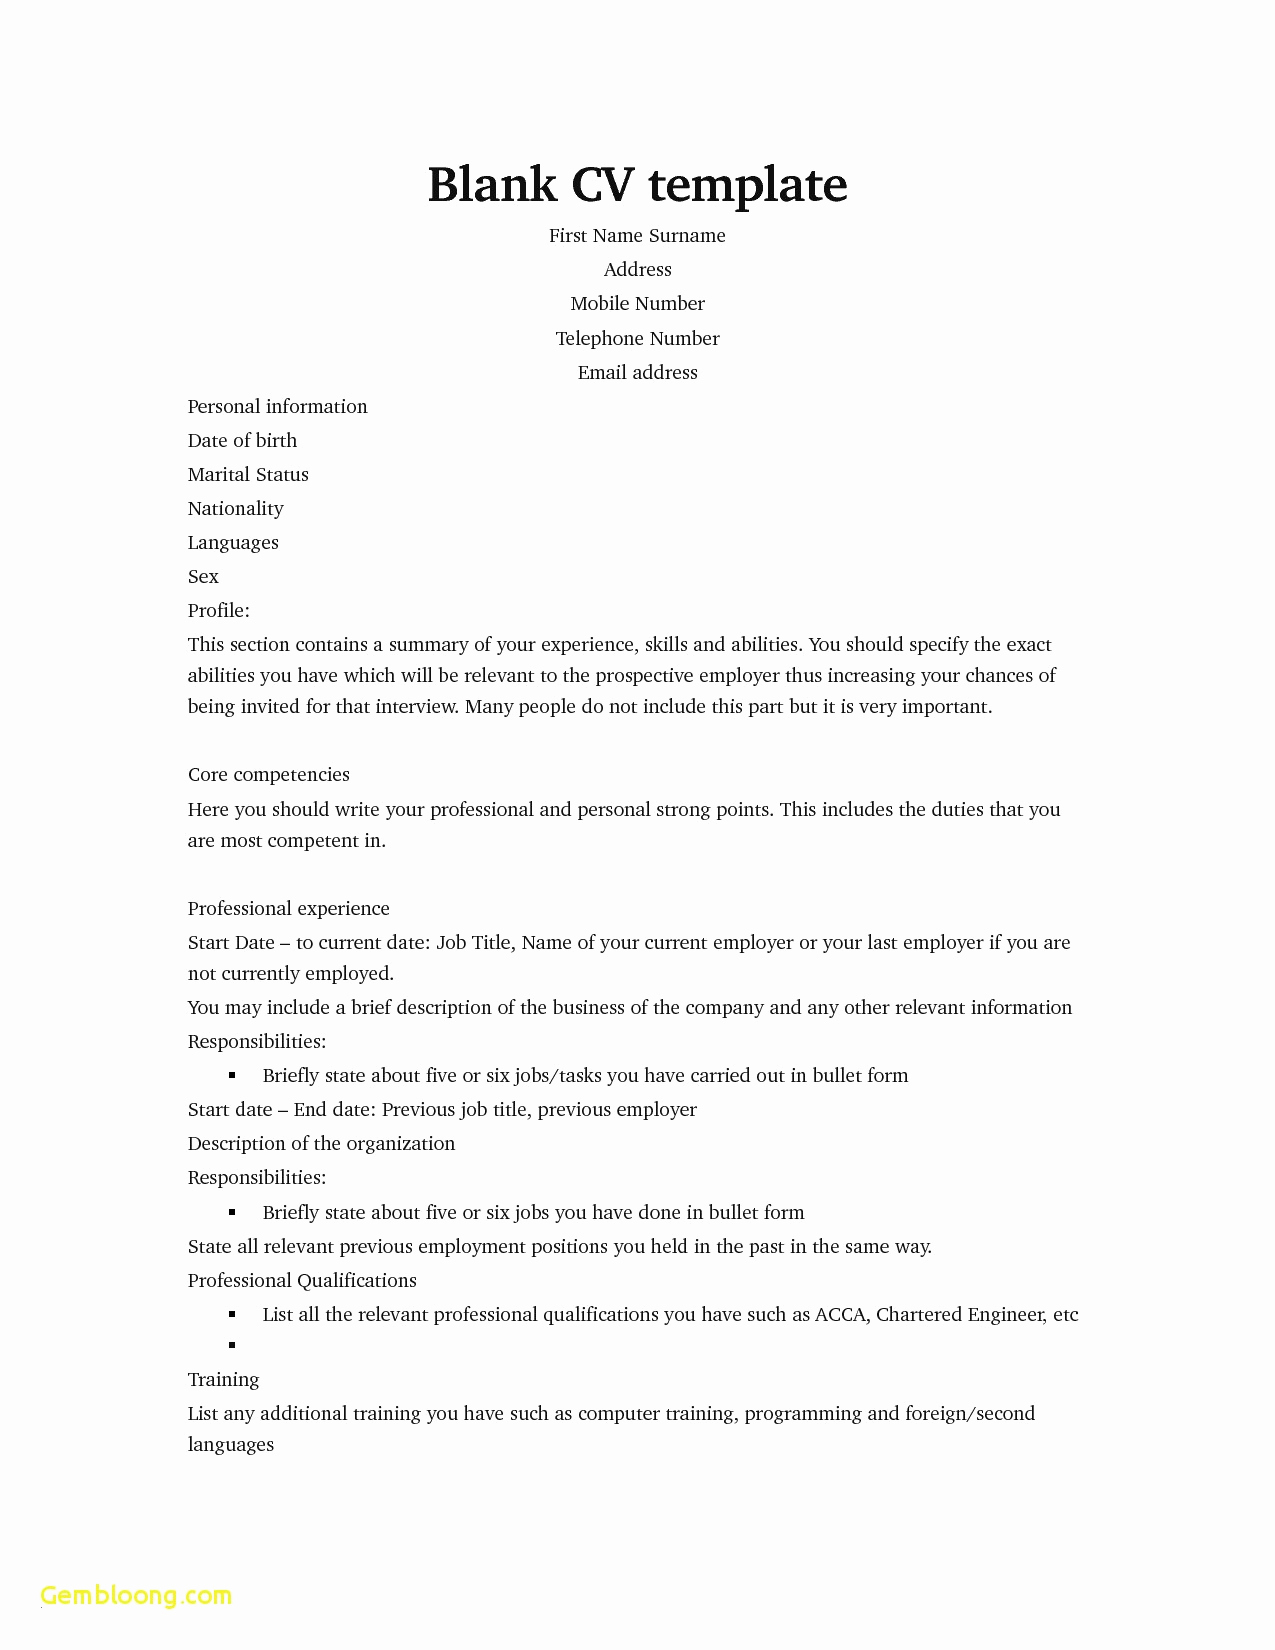 paraprofessional resume template example-Cv Resume Template Free Download Download now Free Resume Templates Download India Best Resume format Download 19-n